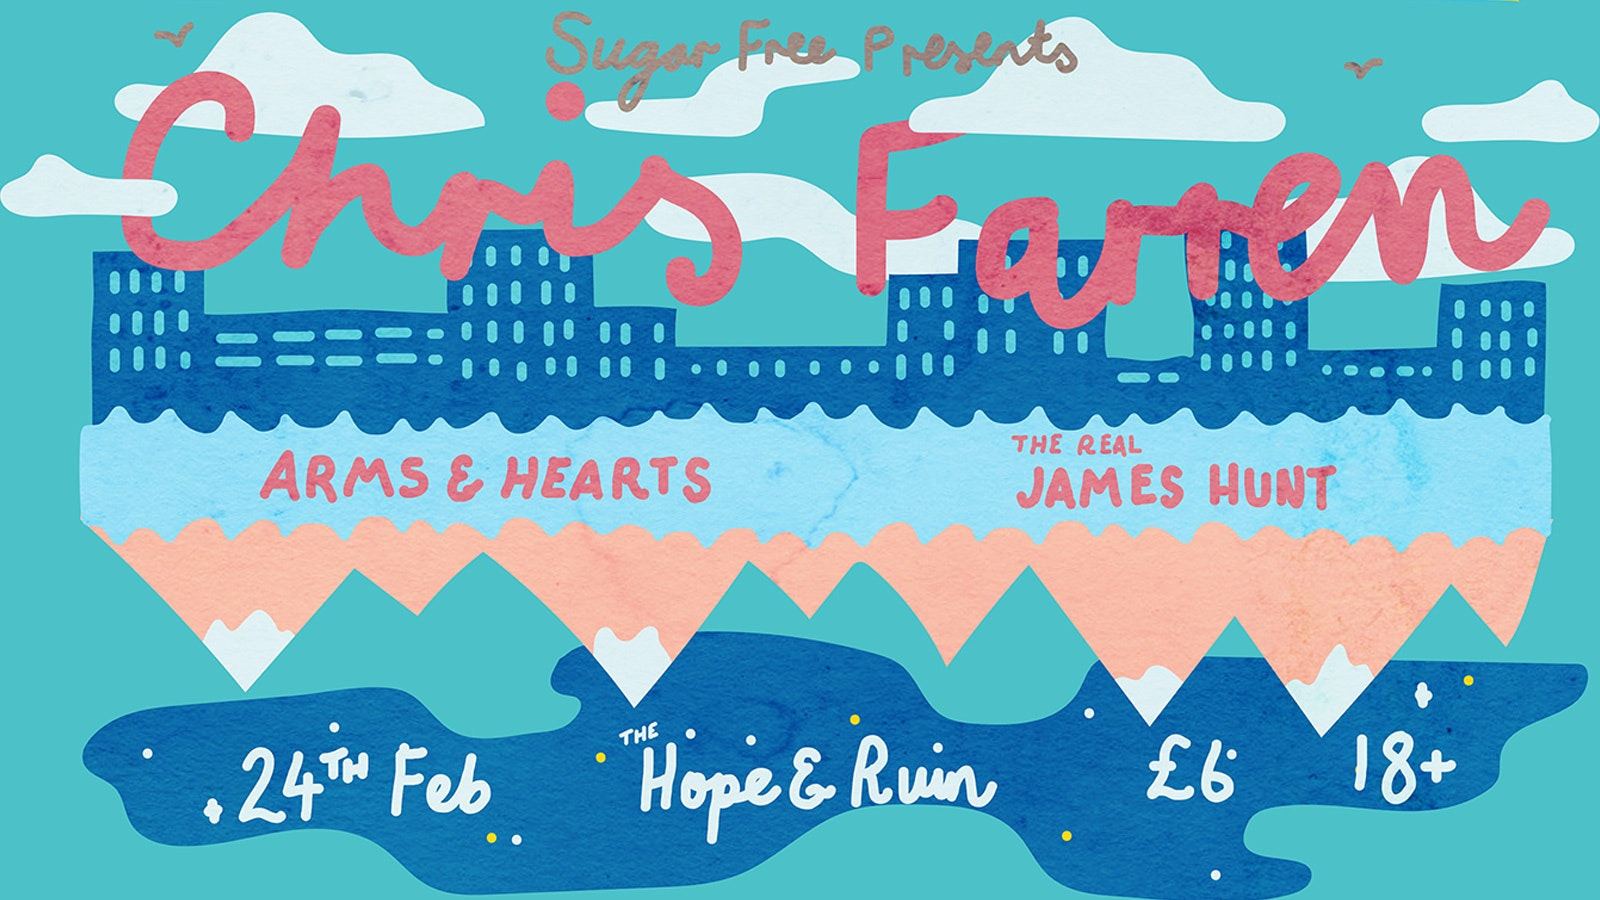 Chris Farren + Arms & Hearts + The Real James Hunt